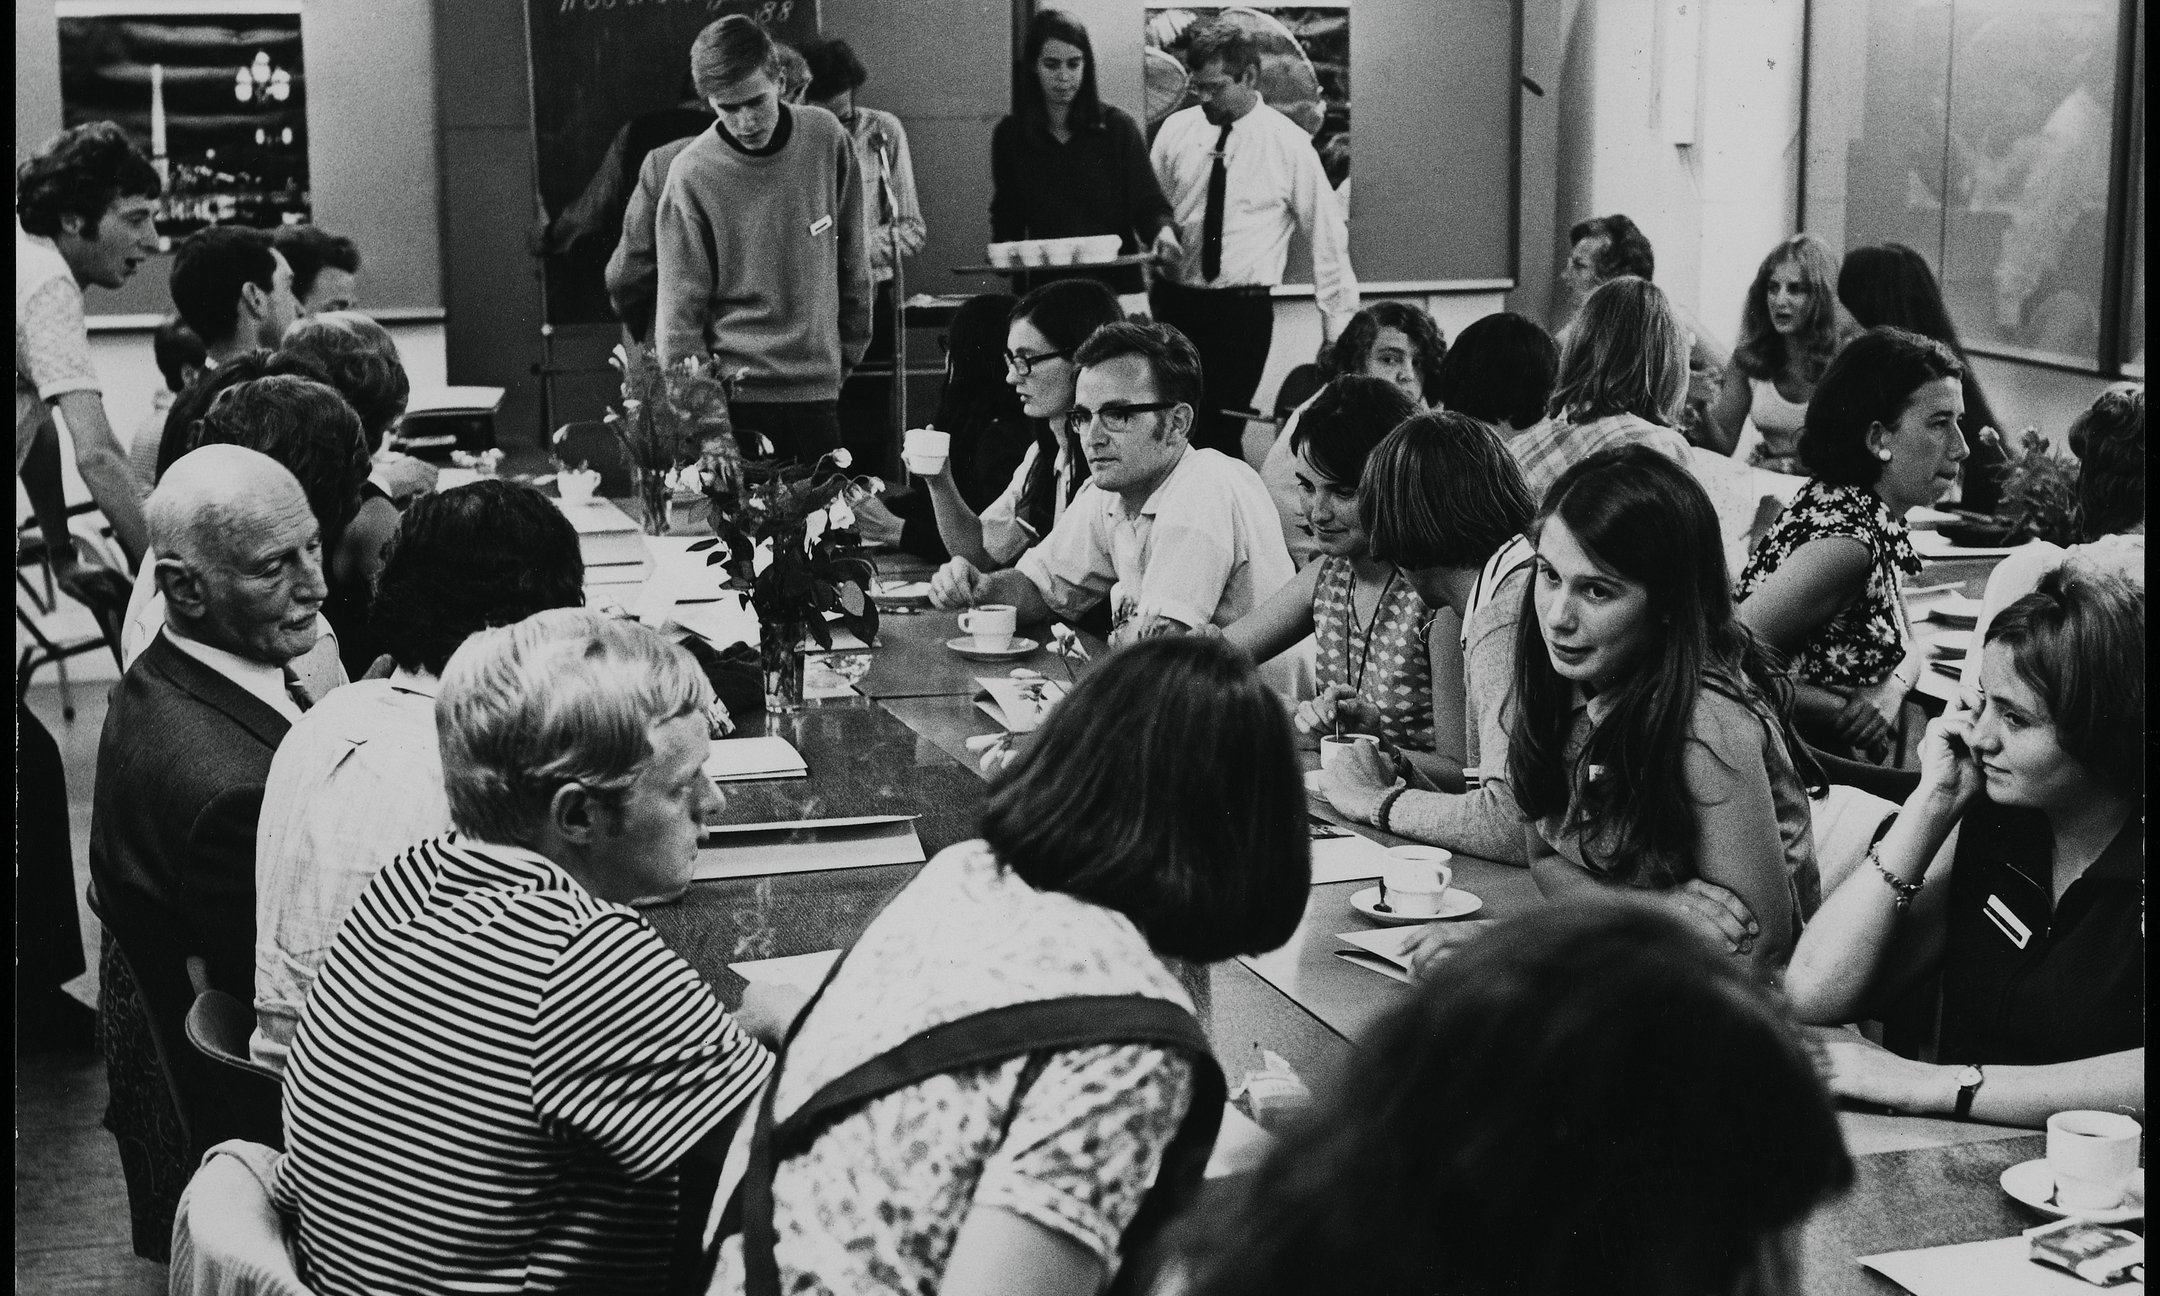 International Youth Conference at the Anne Frank House in 1966, with Otto and Fritzi Frank in the middle